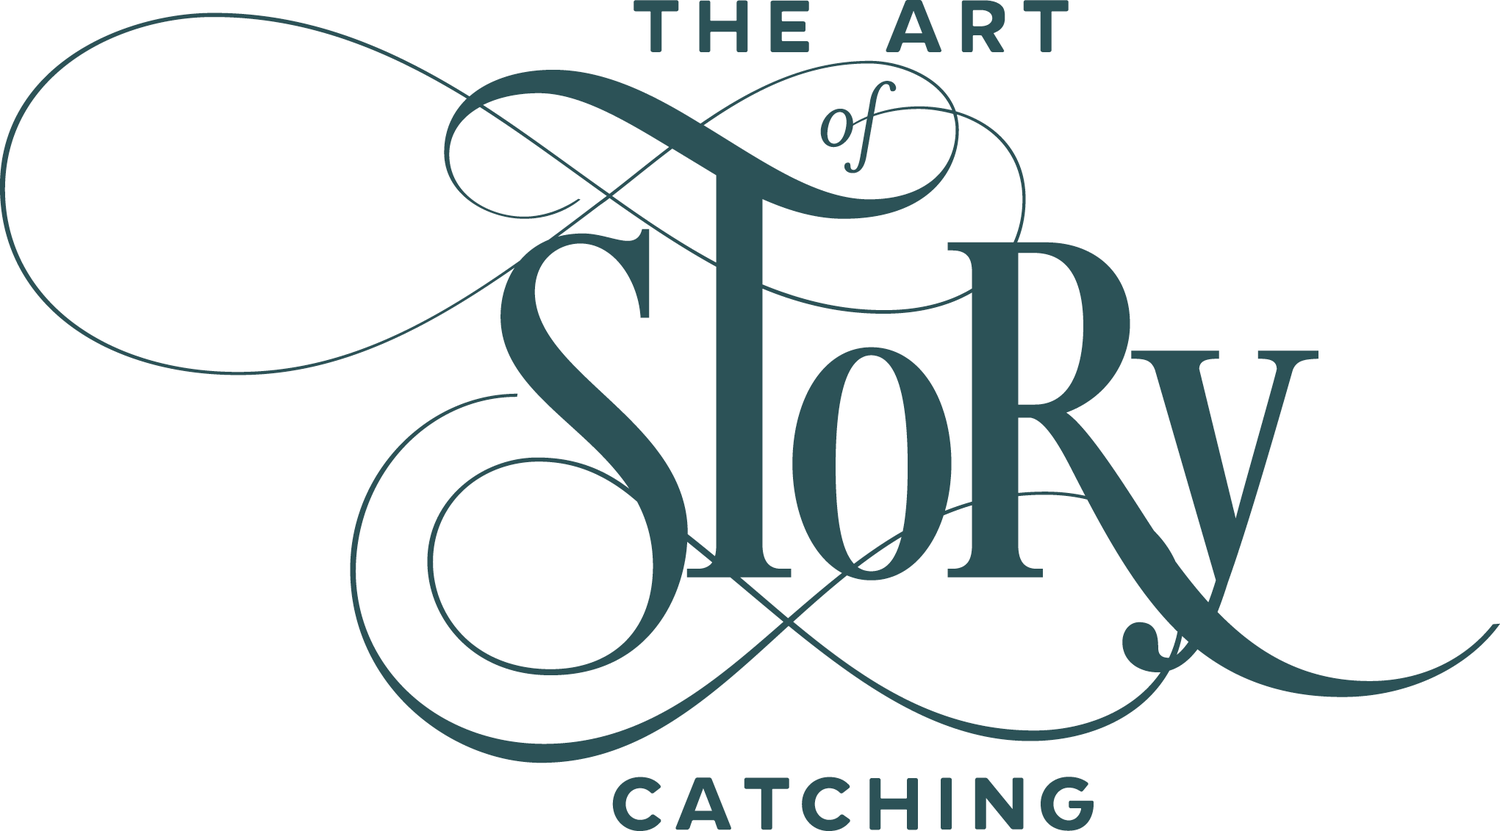 The Art of Story Catching